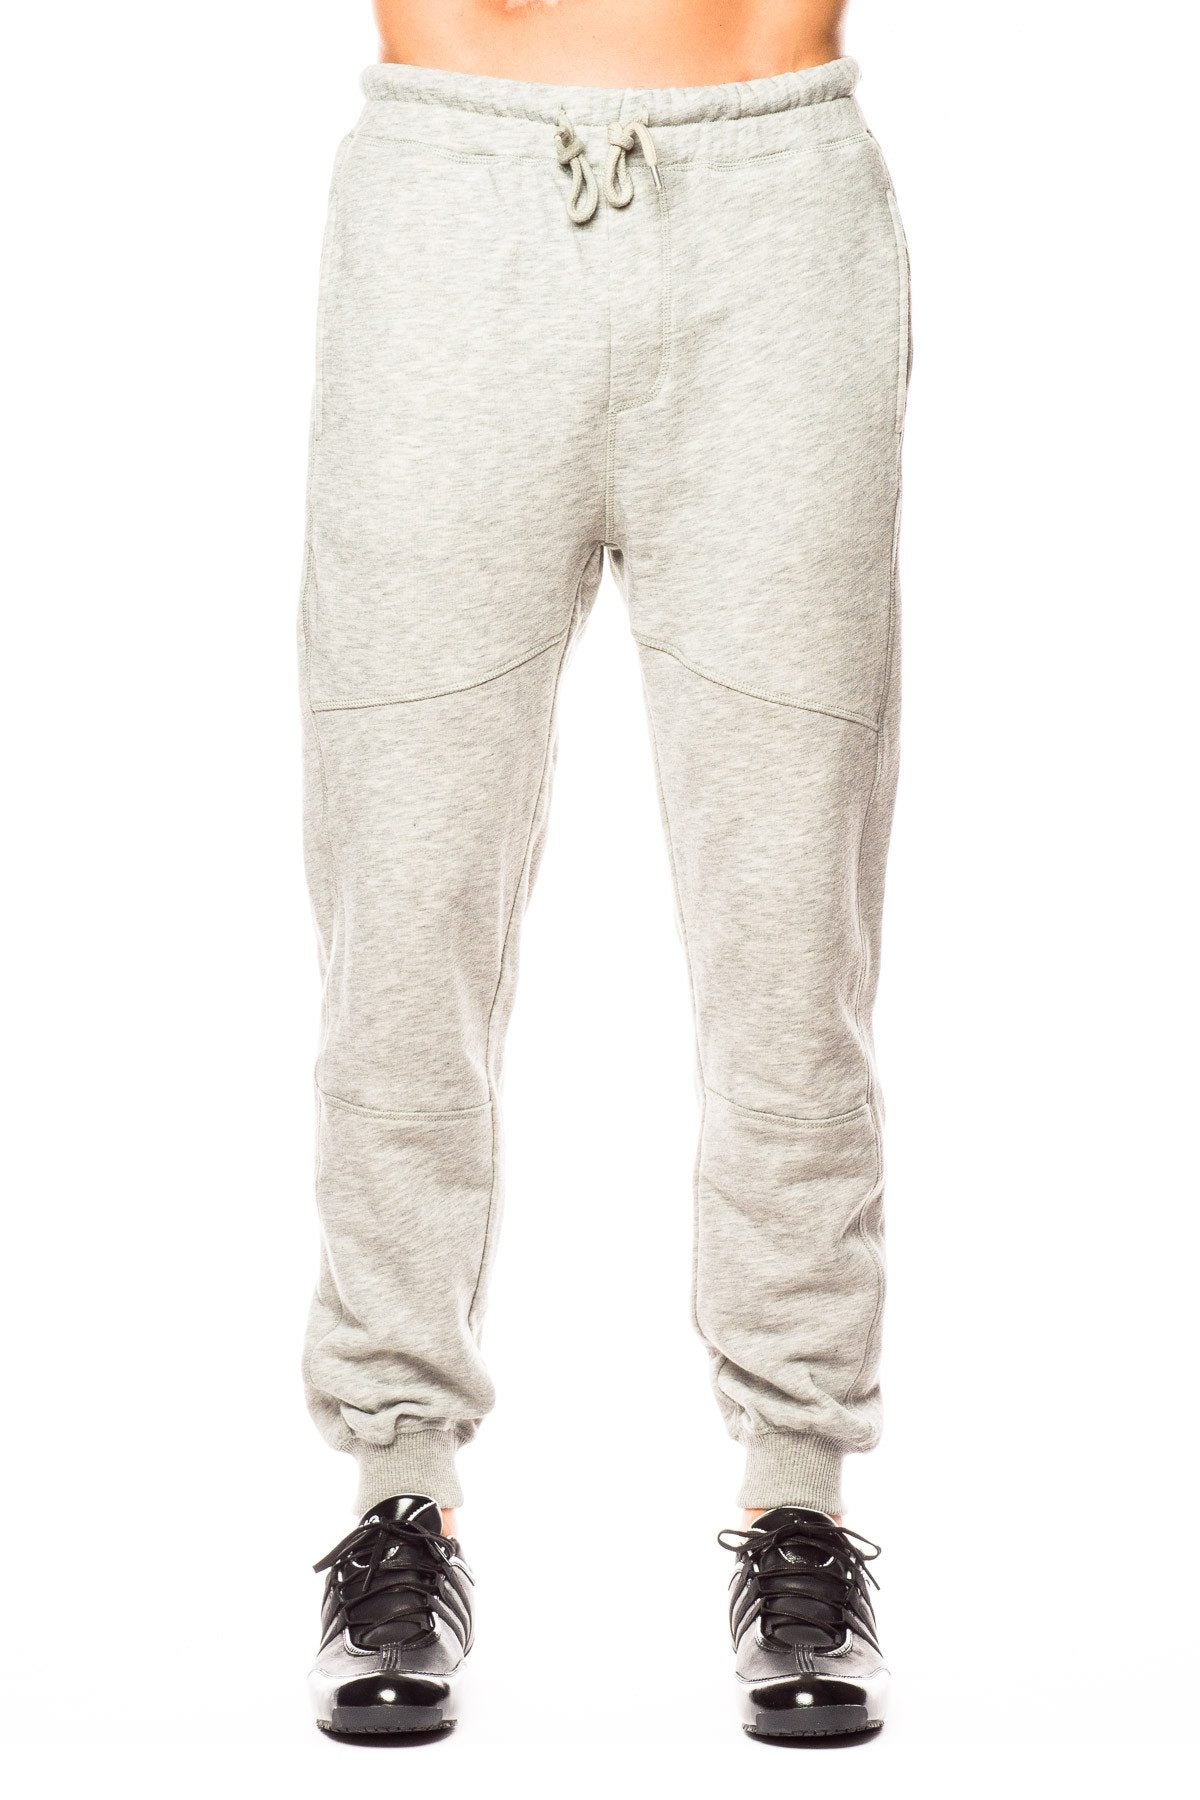 Bottoms - Shades Of Grey Lounge Athlete Grey Pant